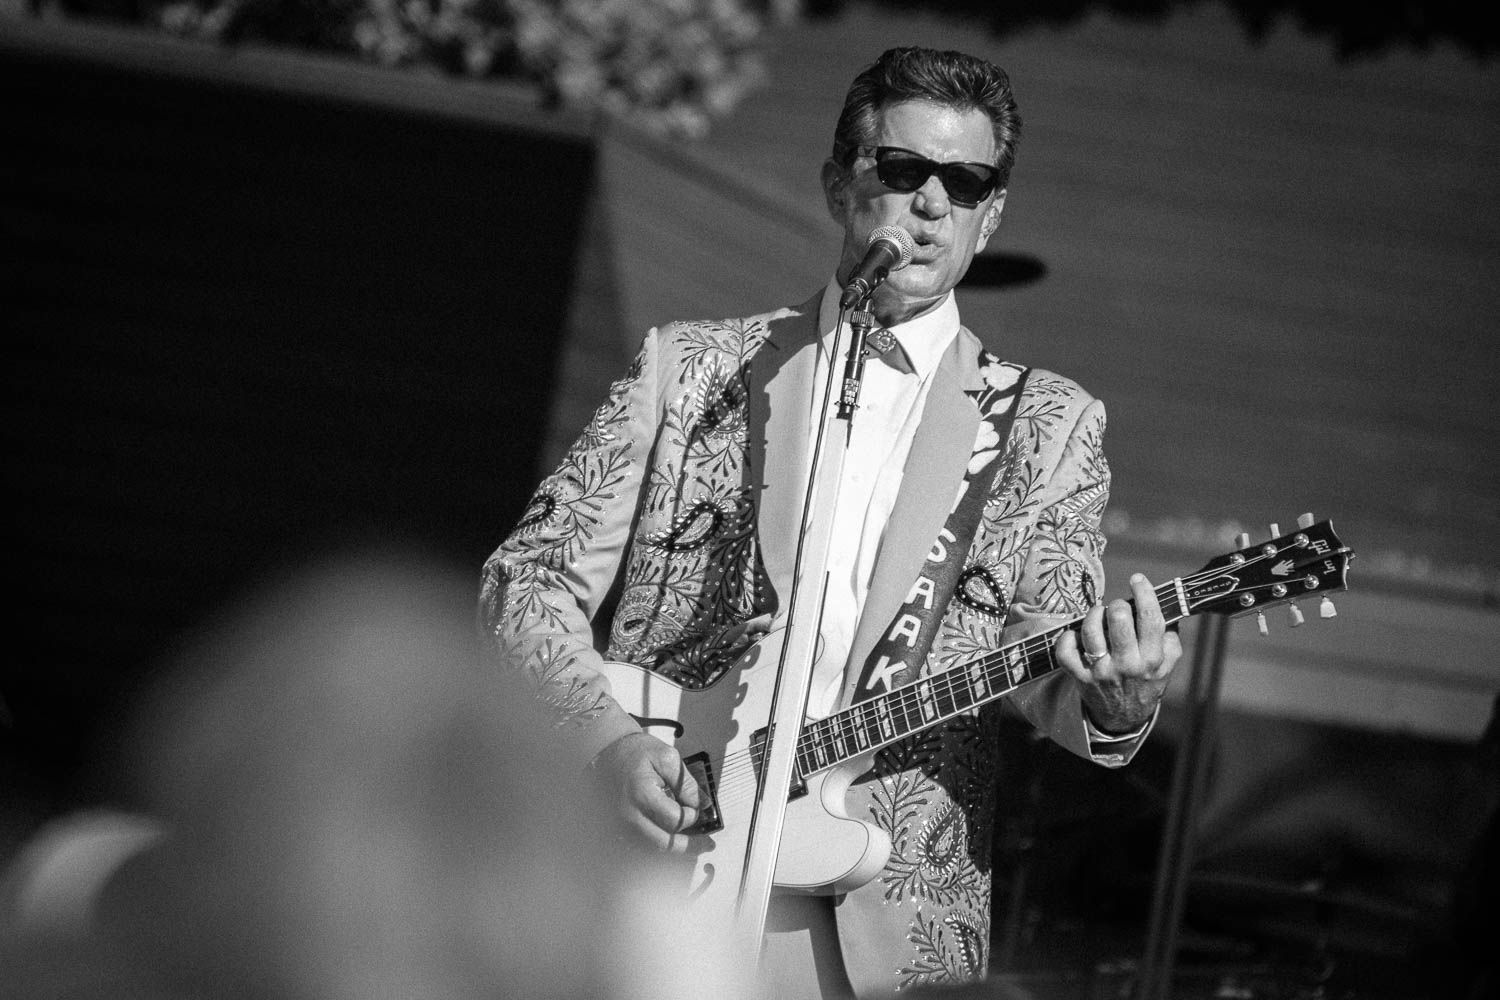 Rodney Strong Concerts 2014 2 Chris Isaak-3471.jpg